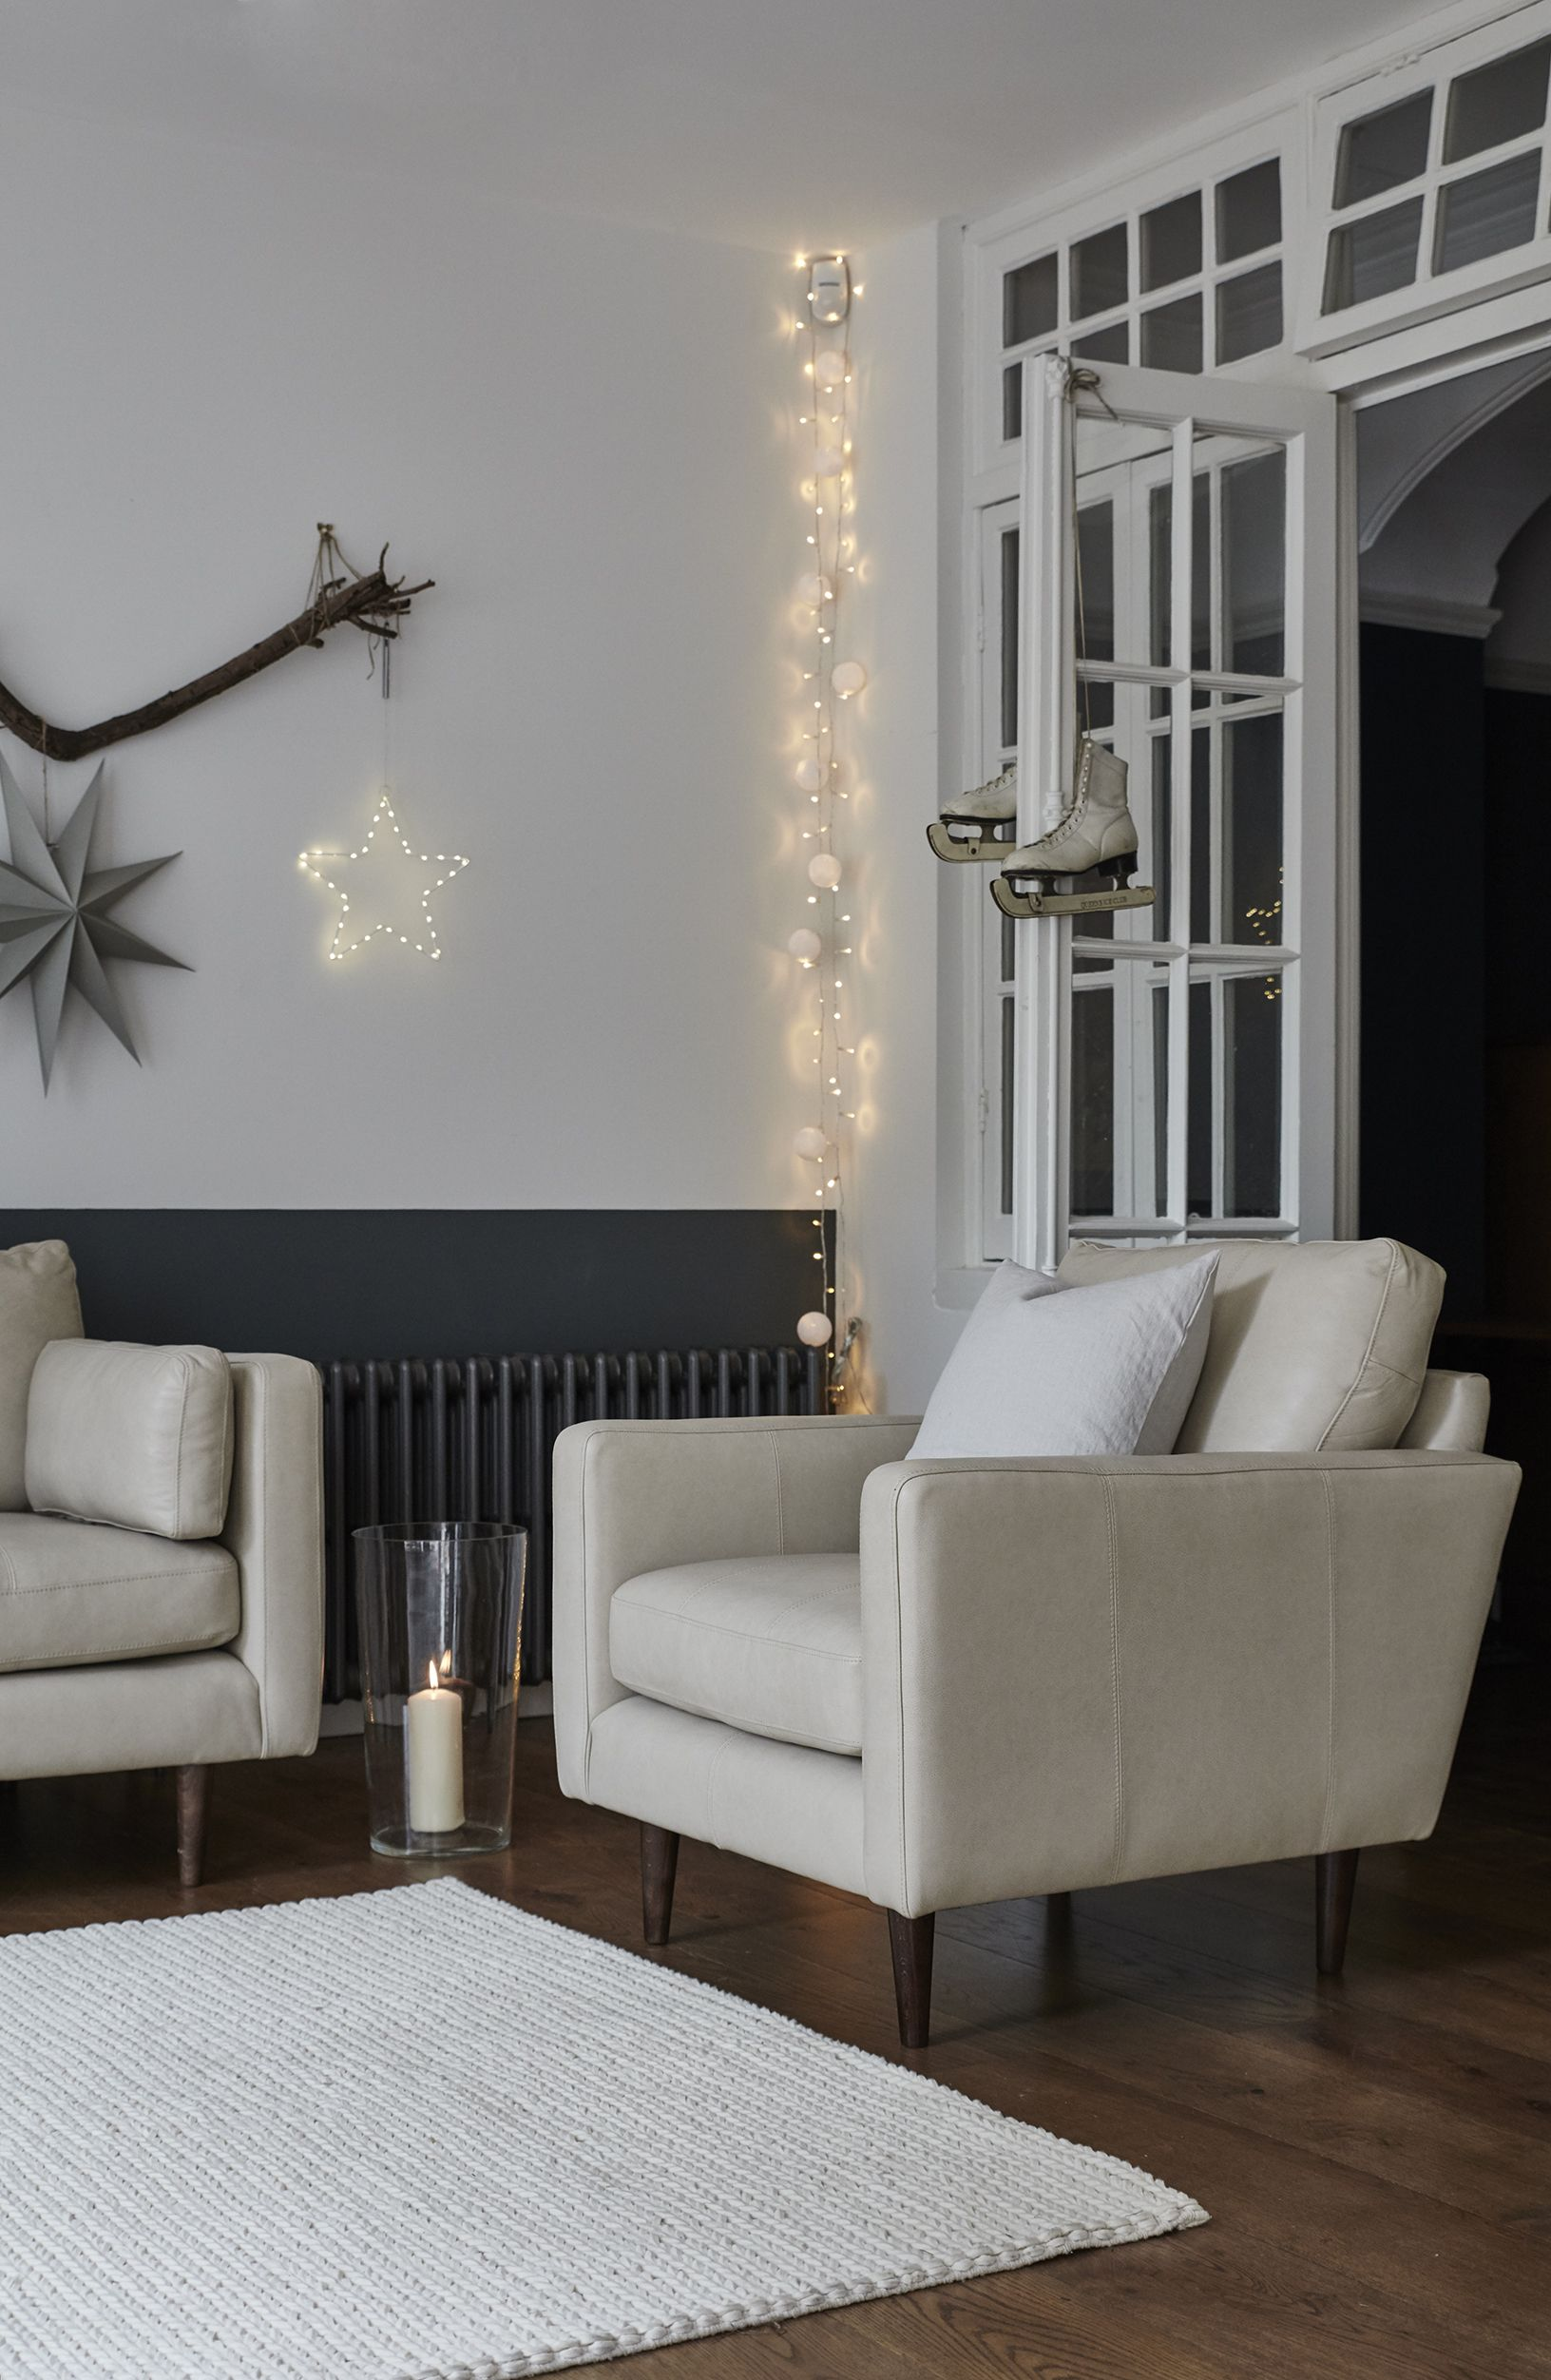 Hang Strings Of Fairy Lights In The Corner Of The Room To Crea